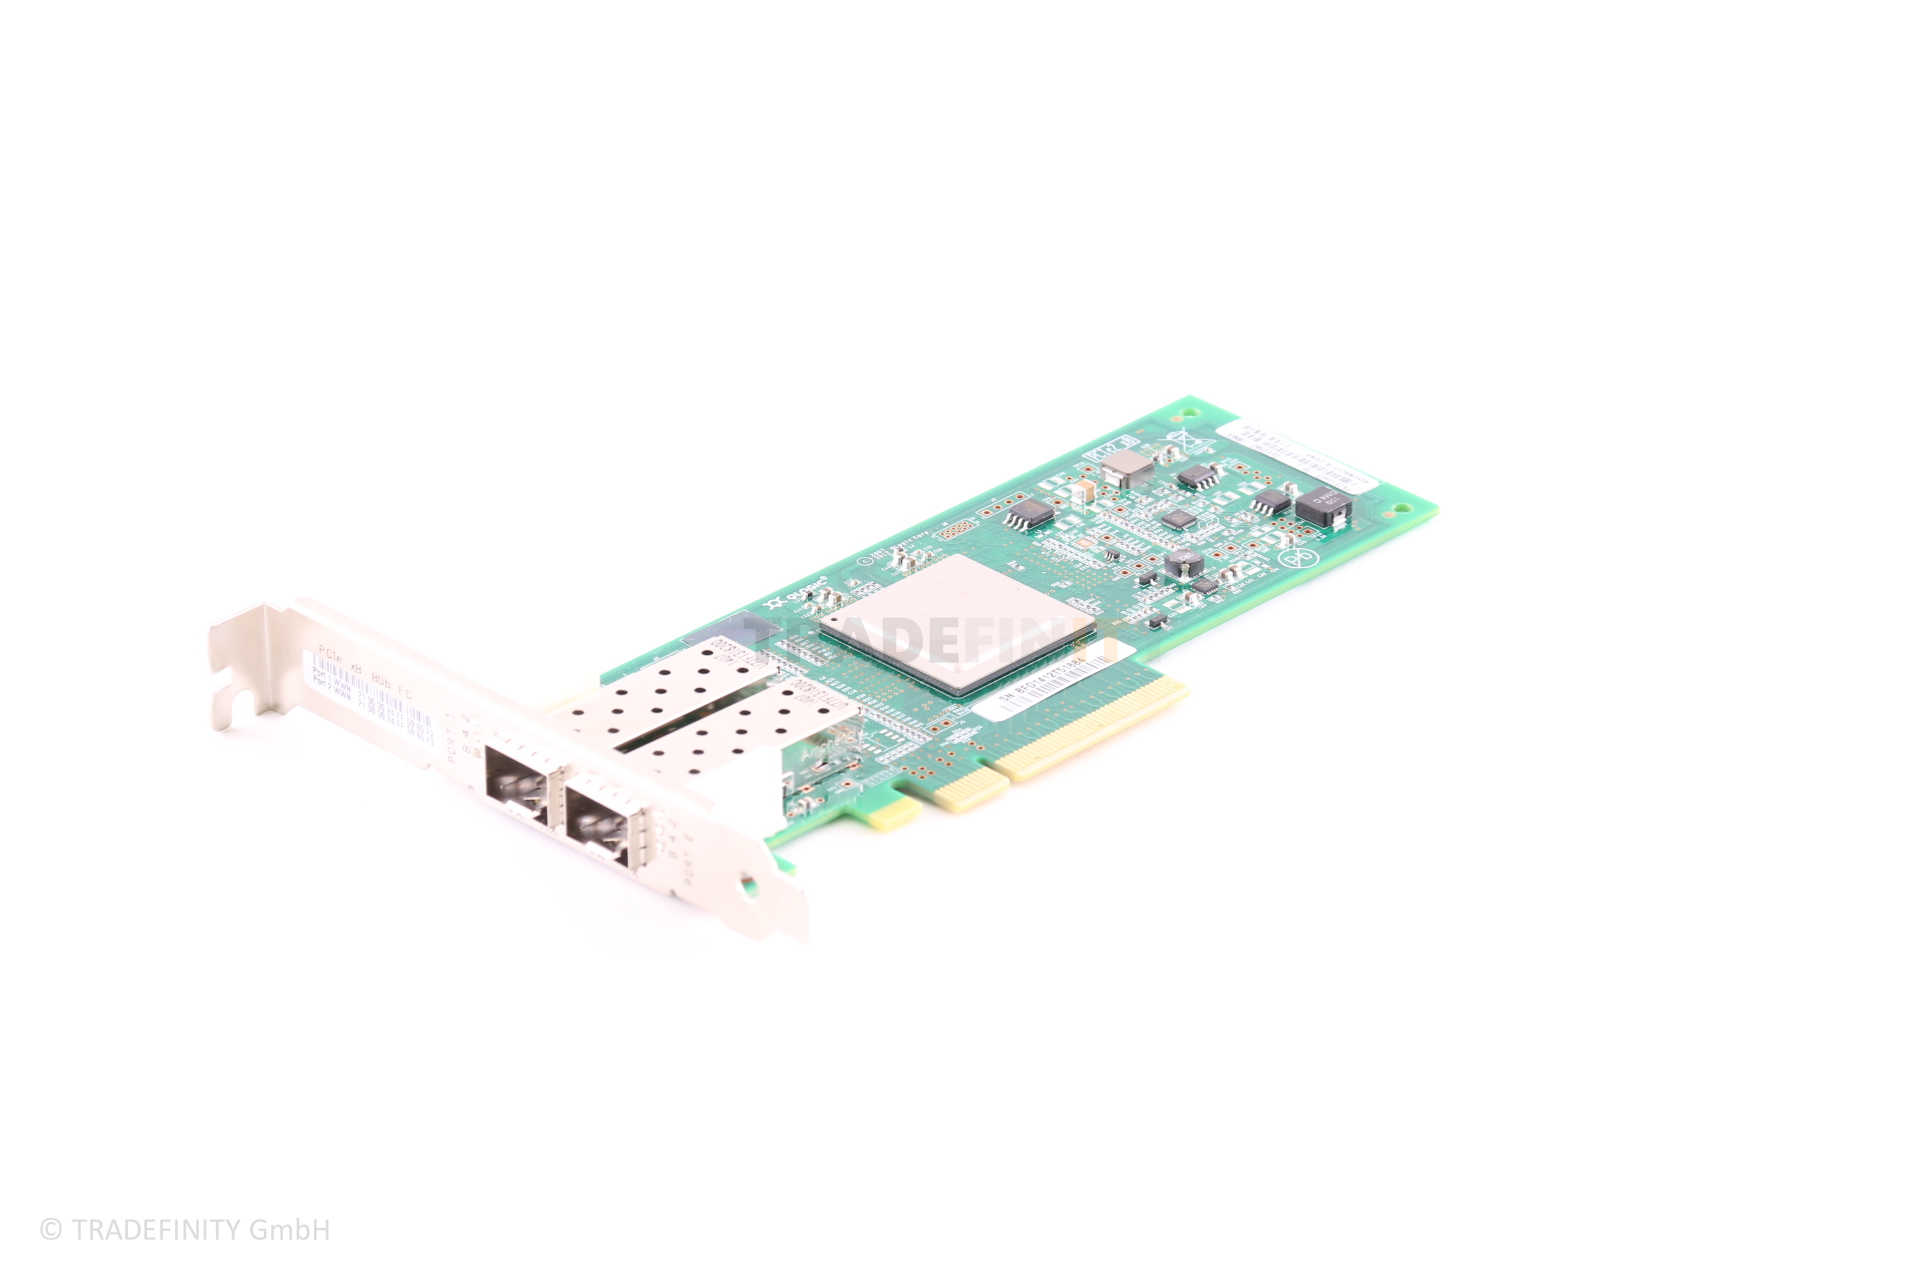 2-Port 8 Gbps Fibre Channel Host Bus Adapter (HBA) QLogic